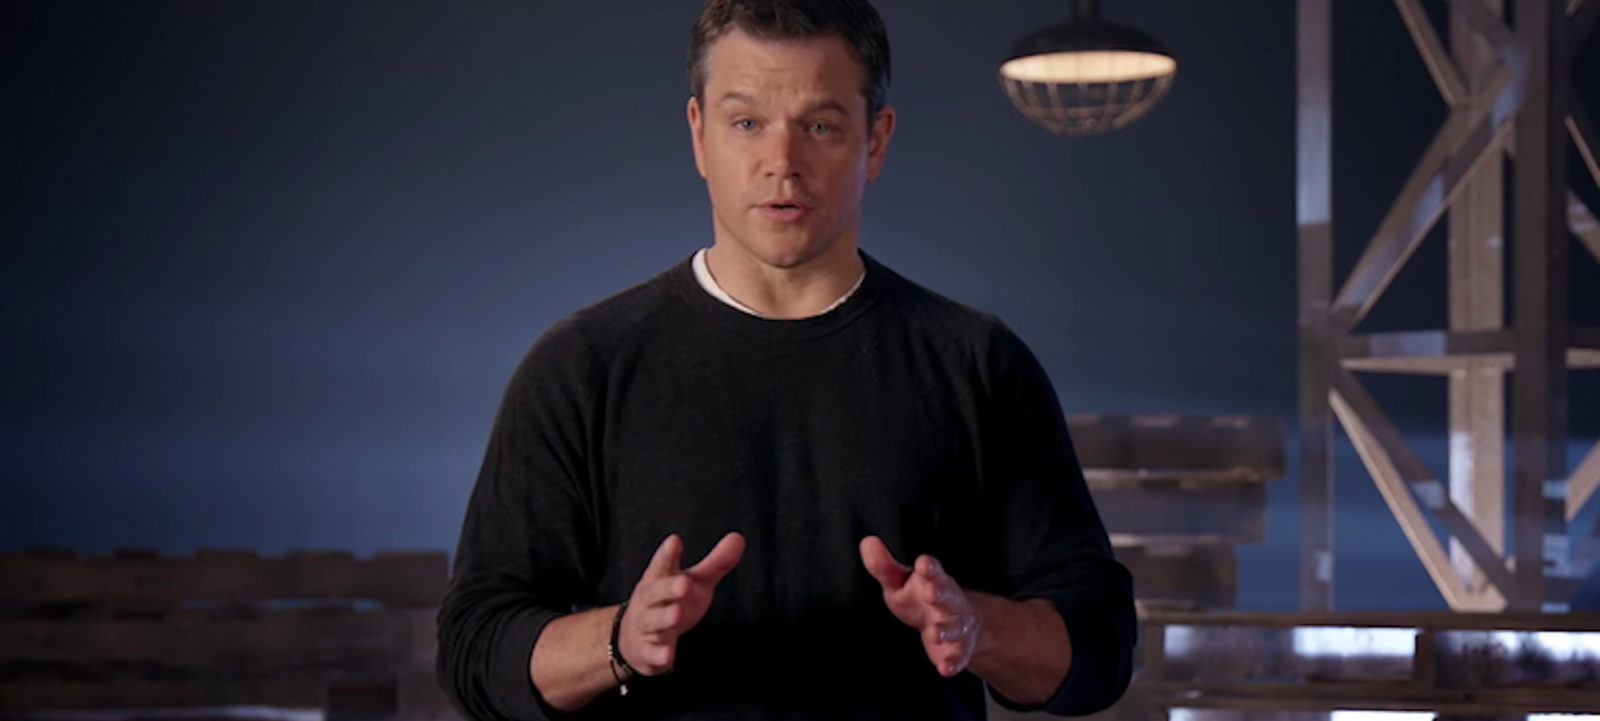 Matt Damon summarizes the Jason Bourne films